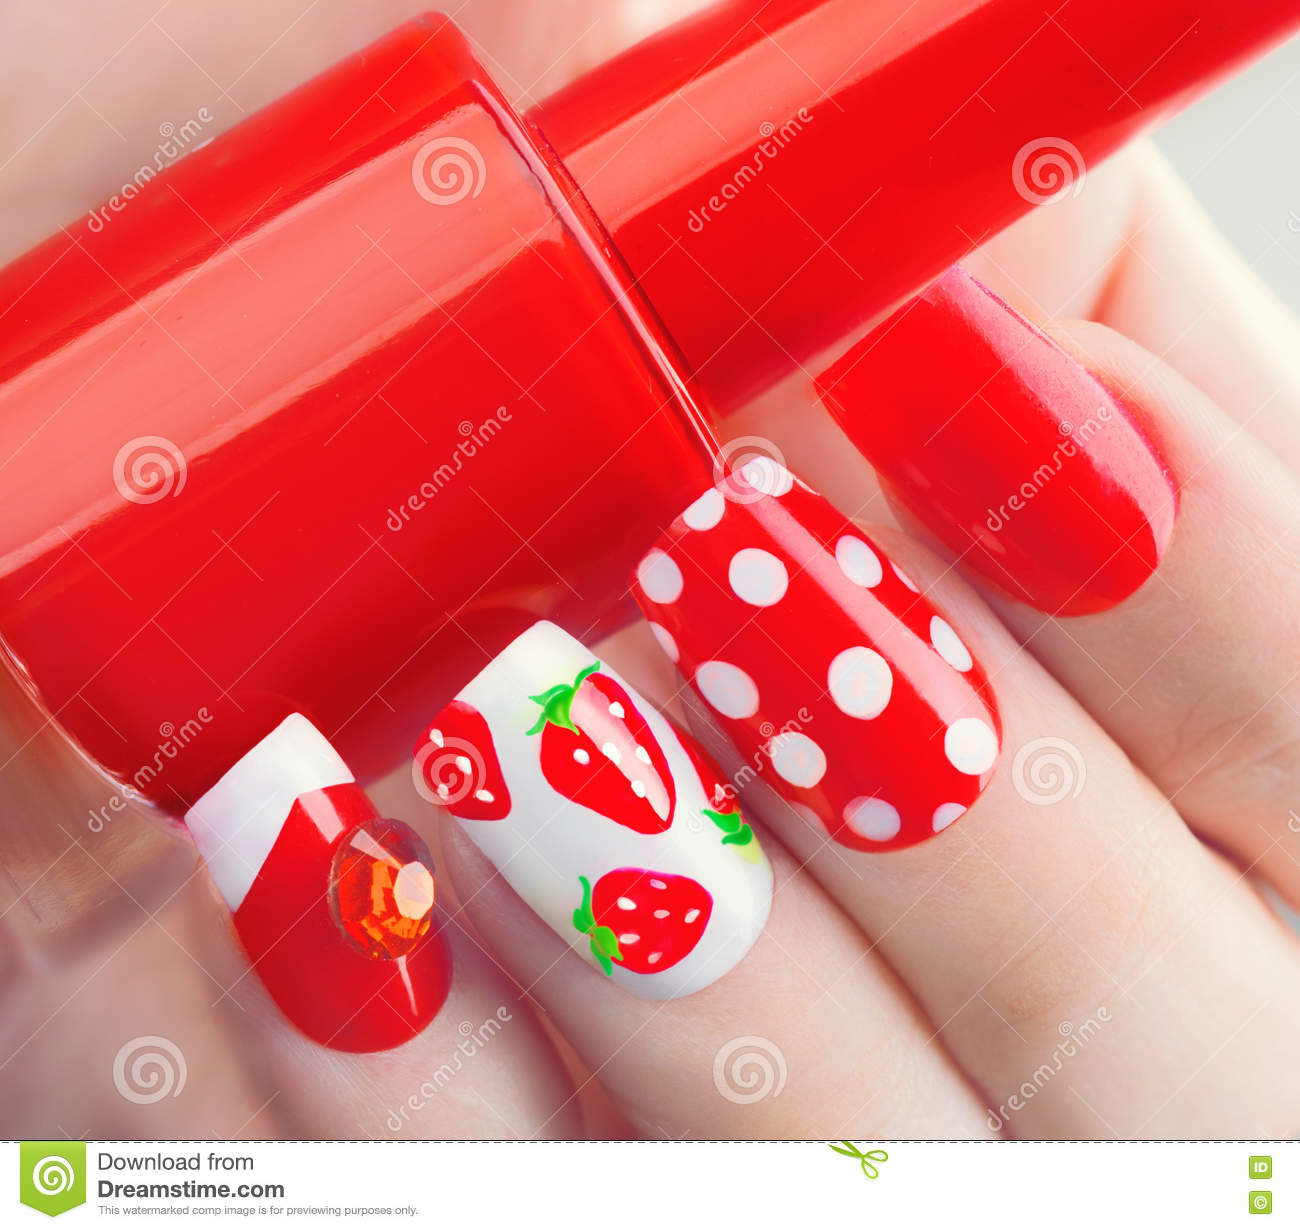 Summer style red manicure with strawberries and polka dots